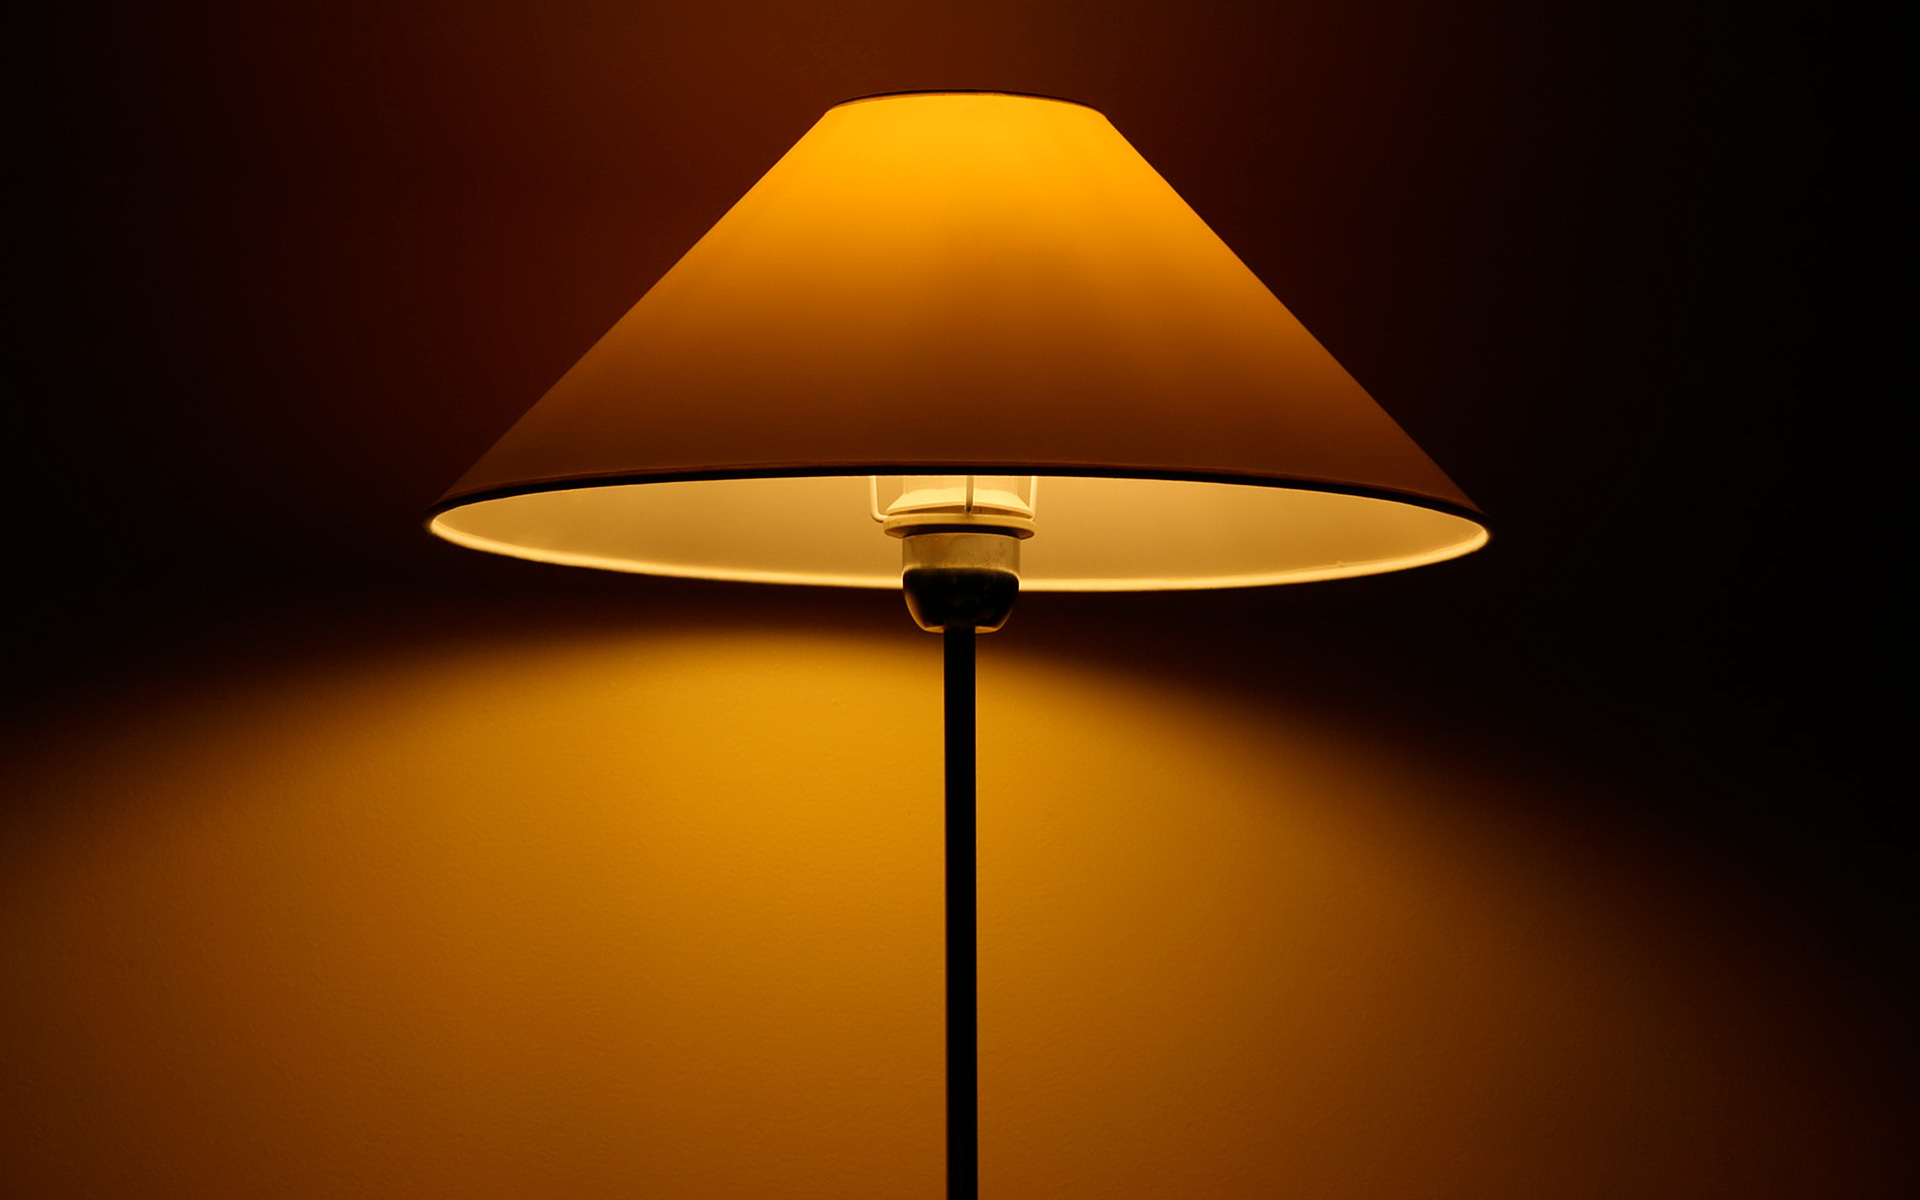 Related Wallpapers. Lamp ...